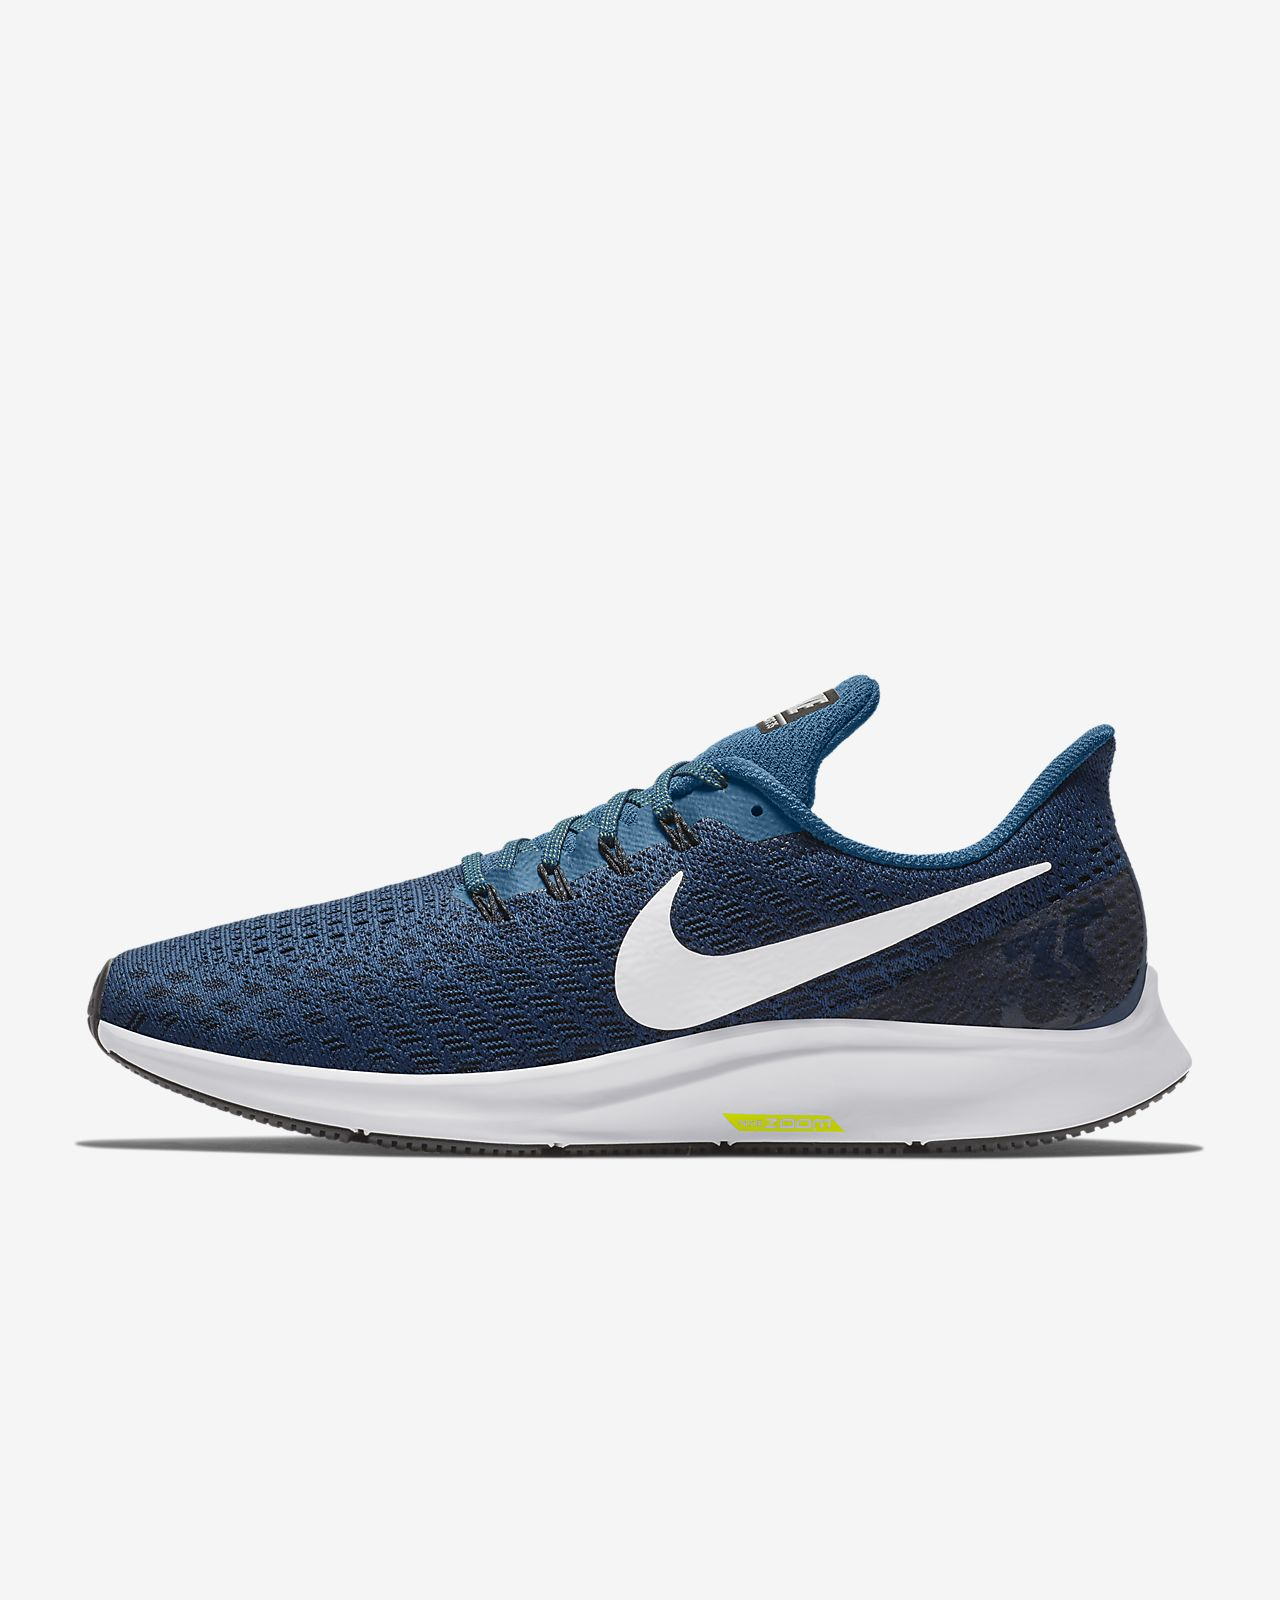 huge discount 1ccff 53179 Mens Running Shoe. Nike Air Zoom Pegasus 35